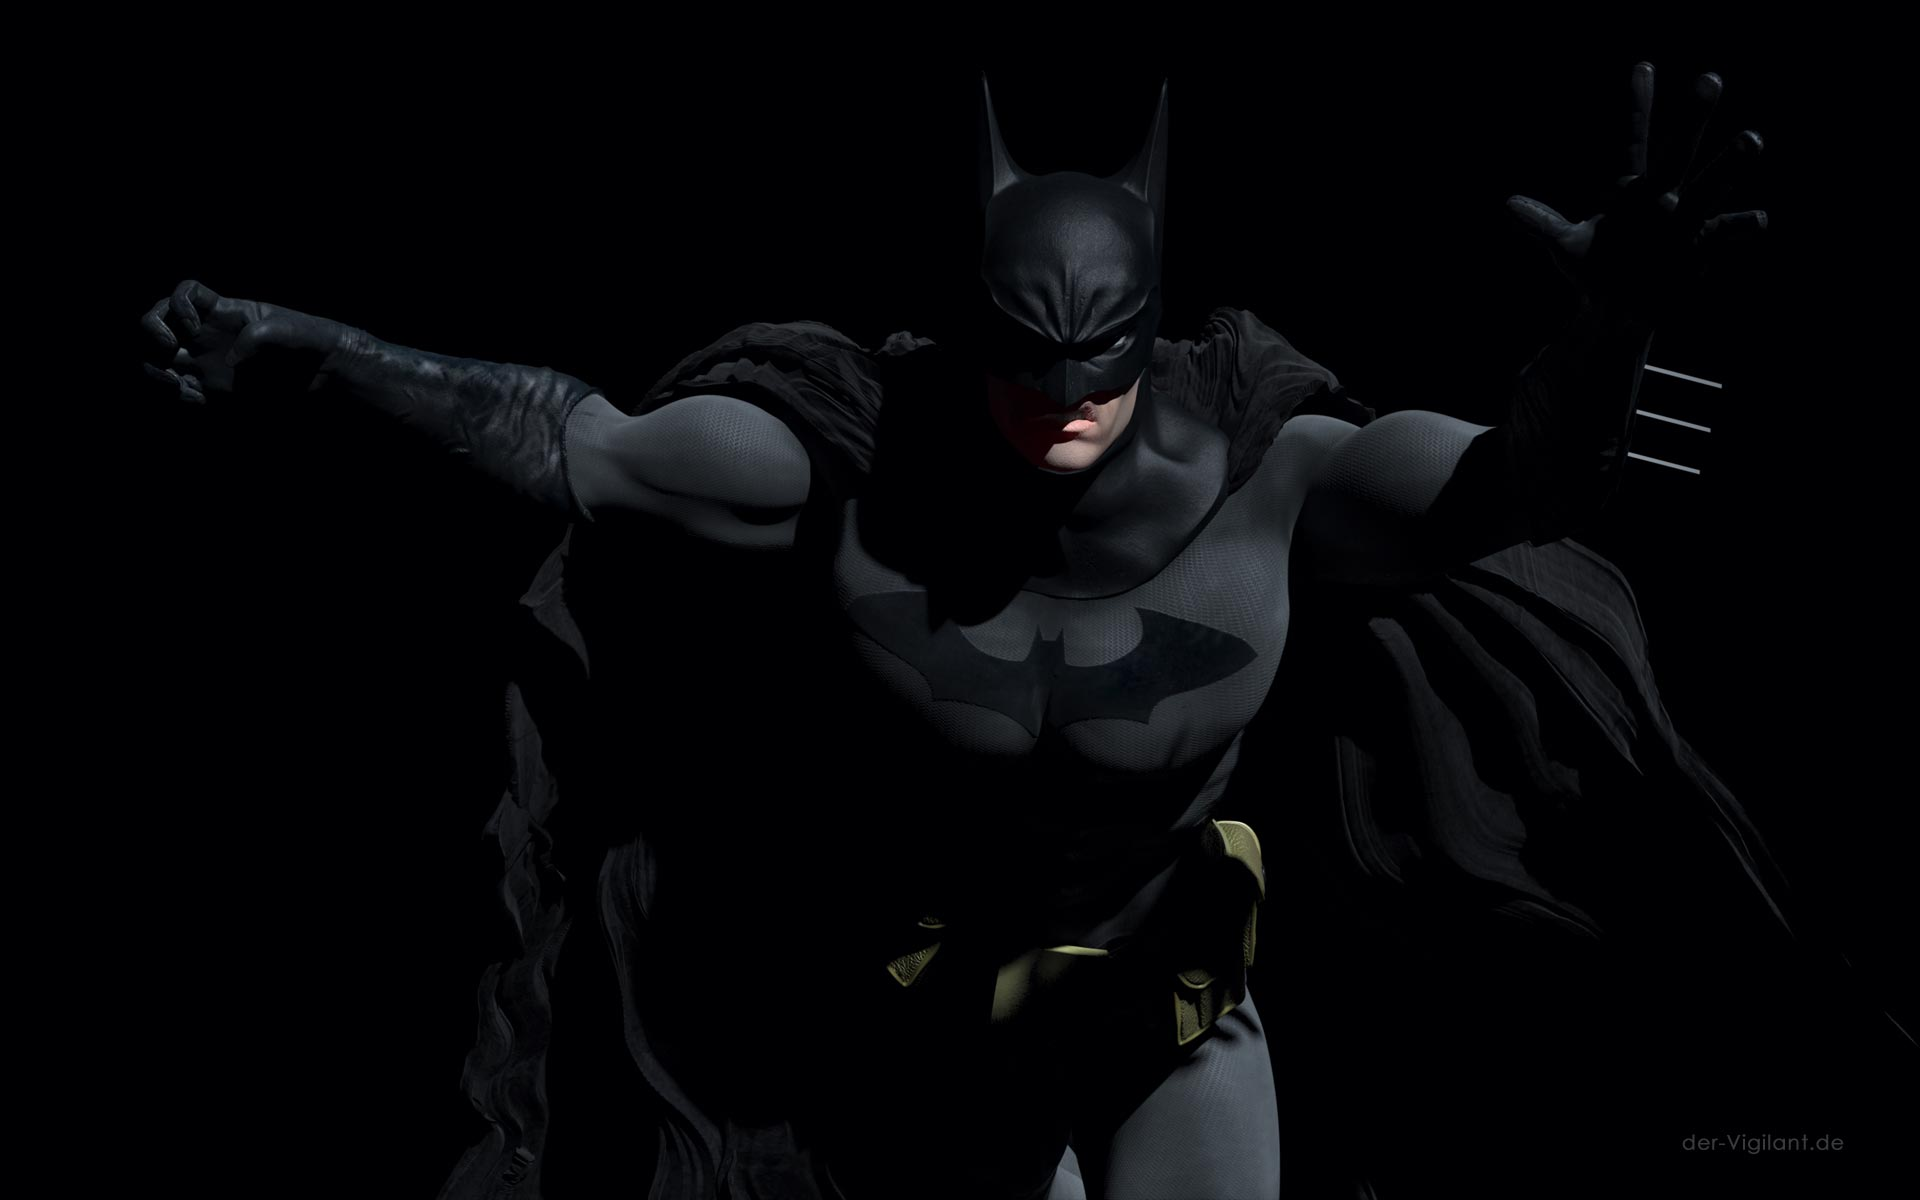 Batman Angry 1920x1200 wallpapers download - Desktop Wallpapers, HD ...